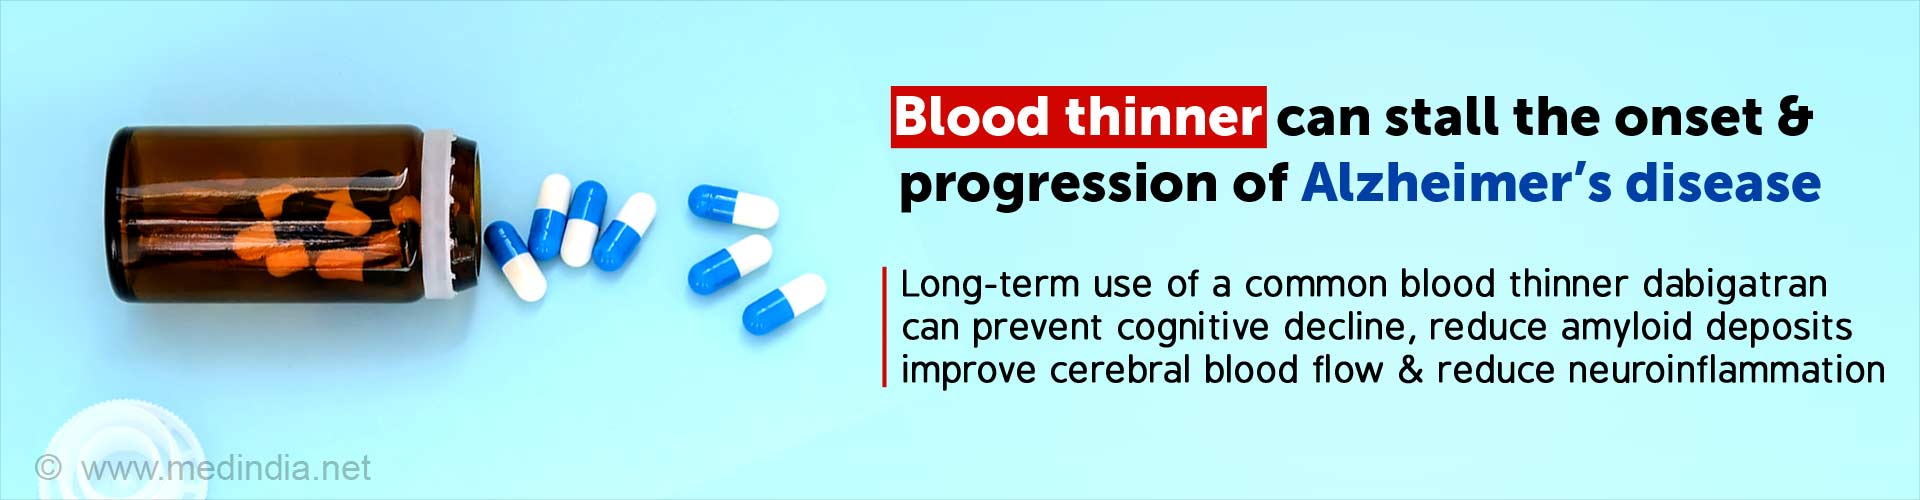 Blood thinner can stall the onset & progression of Alzheimer''s disease. Long-term use of a common blood thinner dabigatran can prevent cognitive decline, reduce amyloid deposits, improve cerebral blood flow, and reduce neuroinflammation.